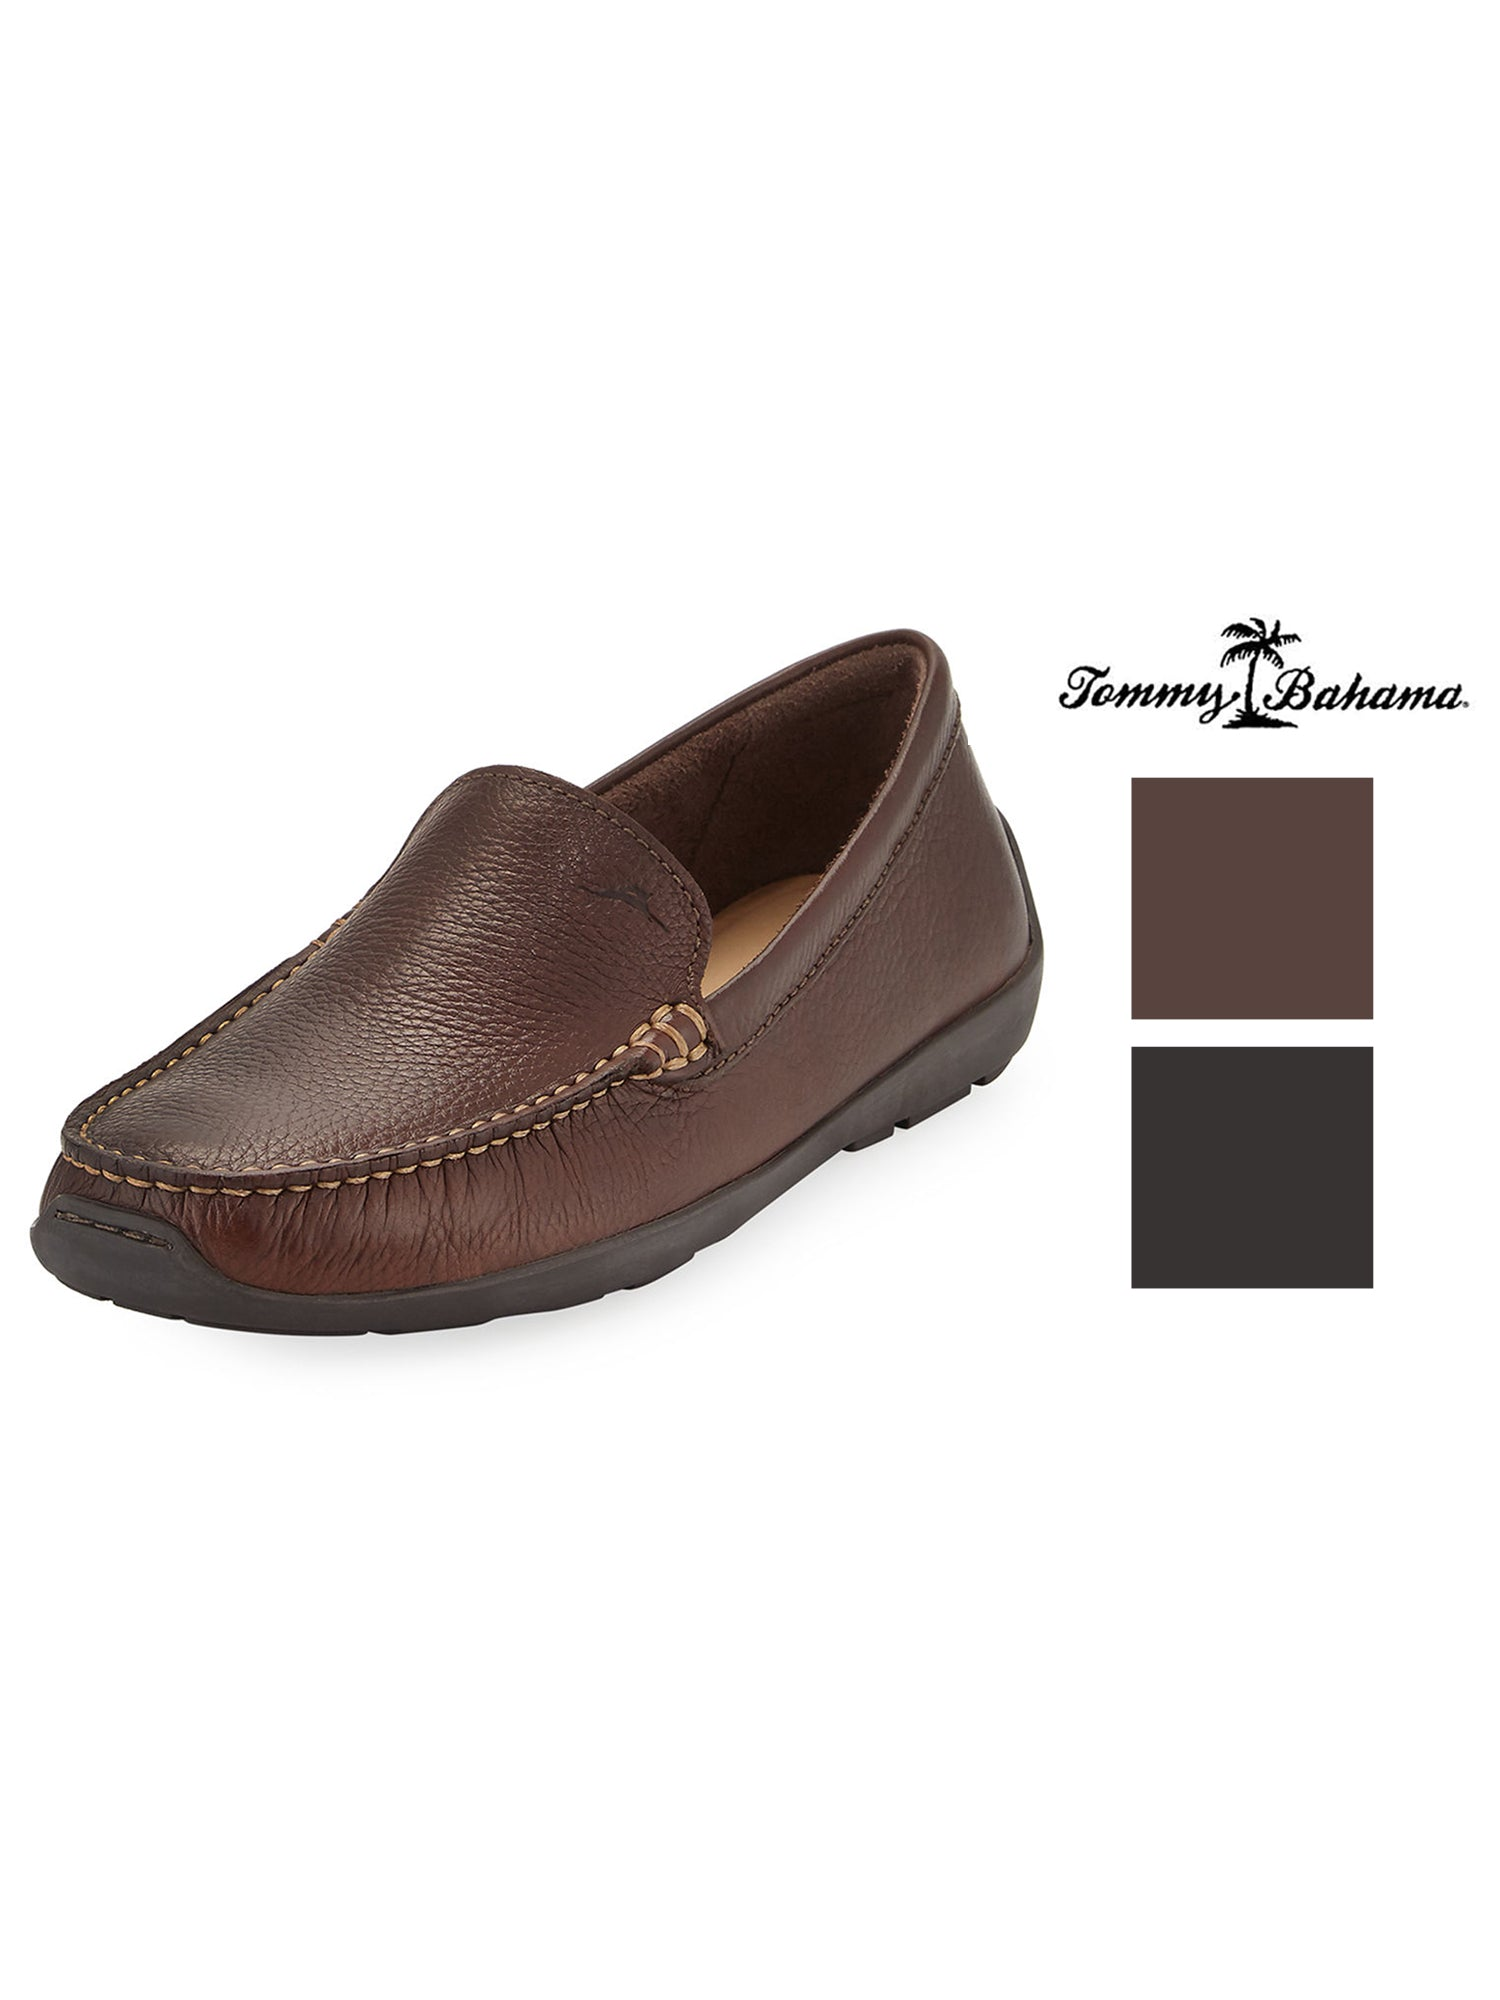 Tommy Bahama Amalfi TB7S00145 Mens Brown Leather Moccasin Loafers Shoes 15